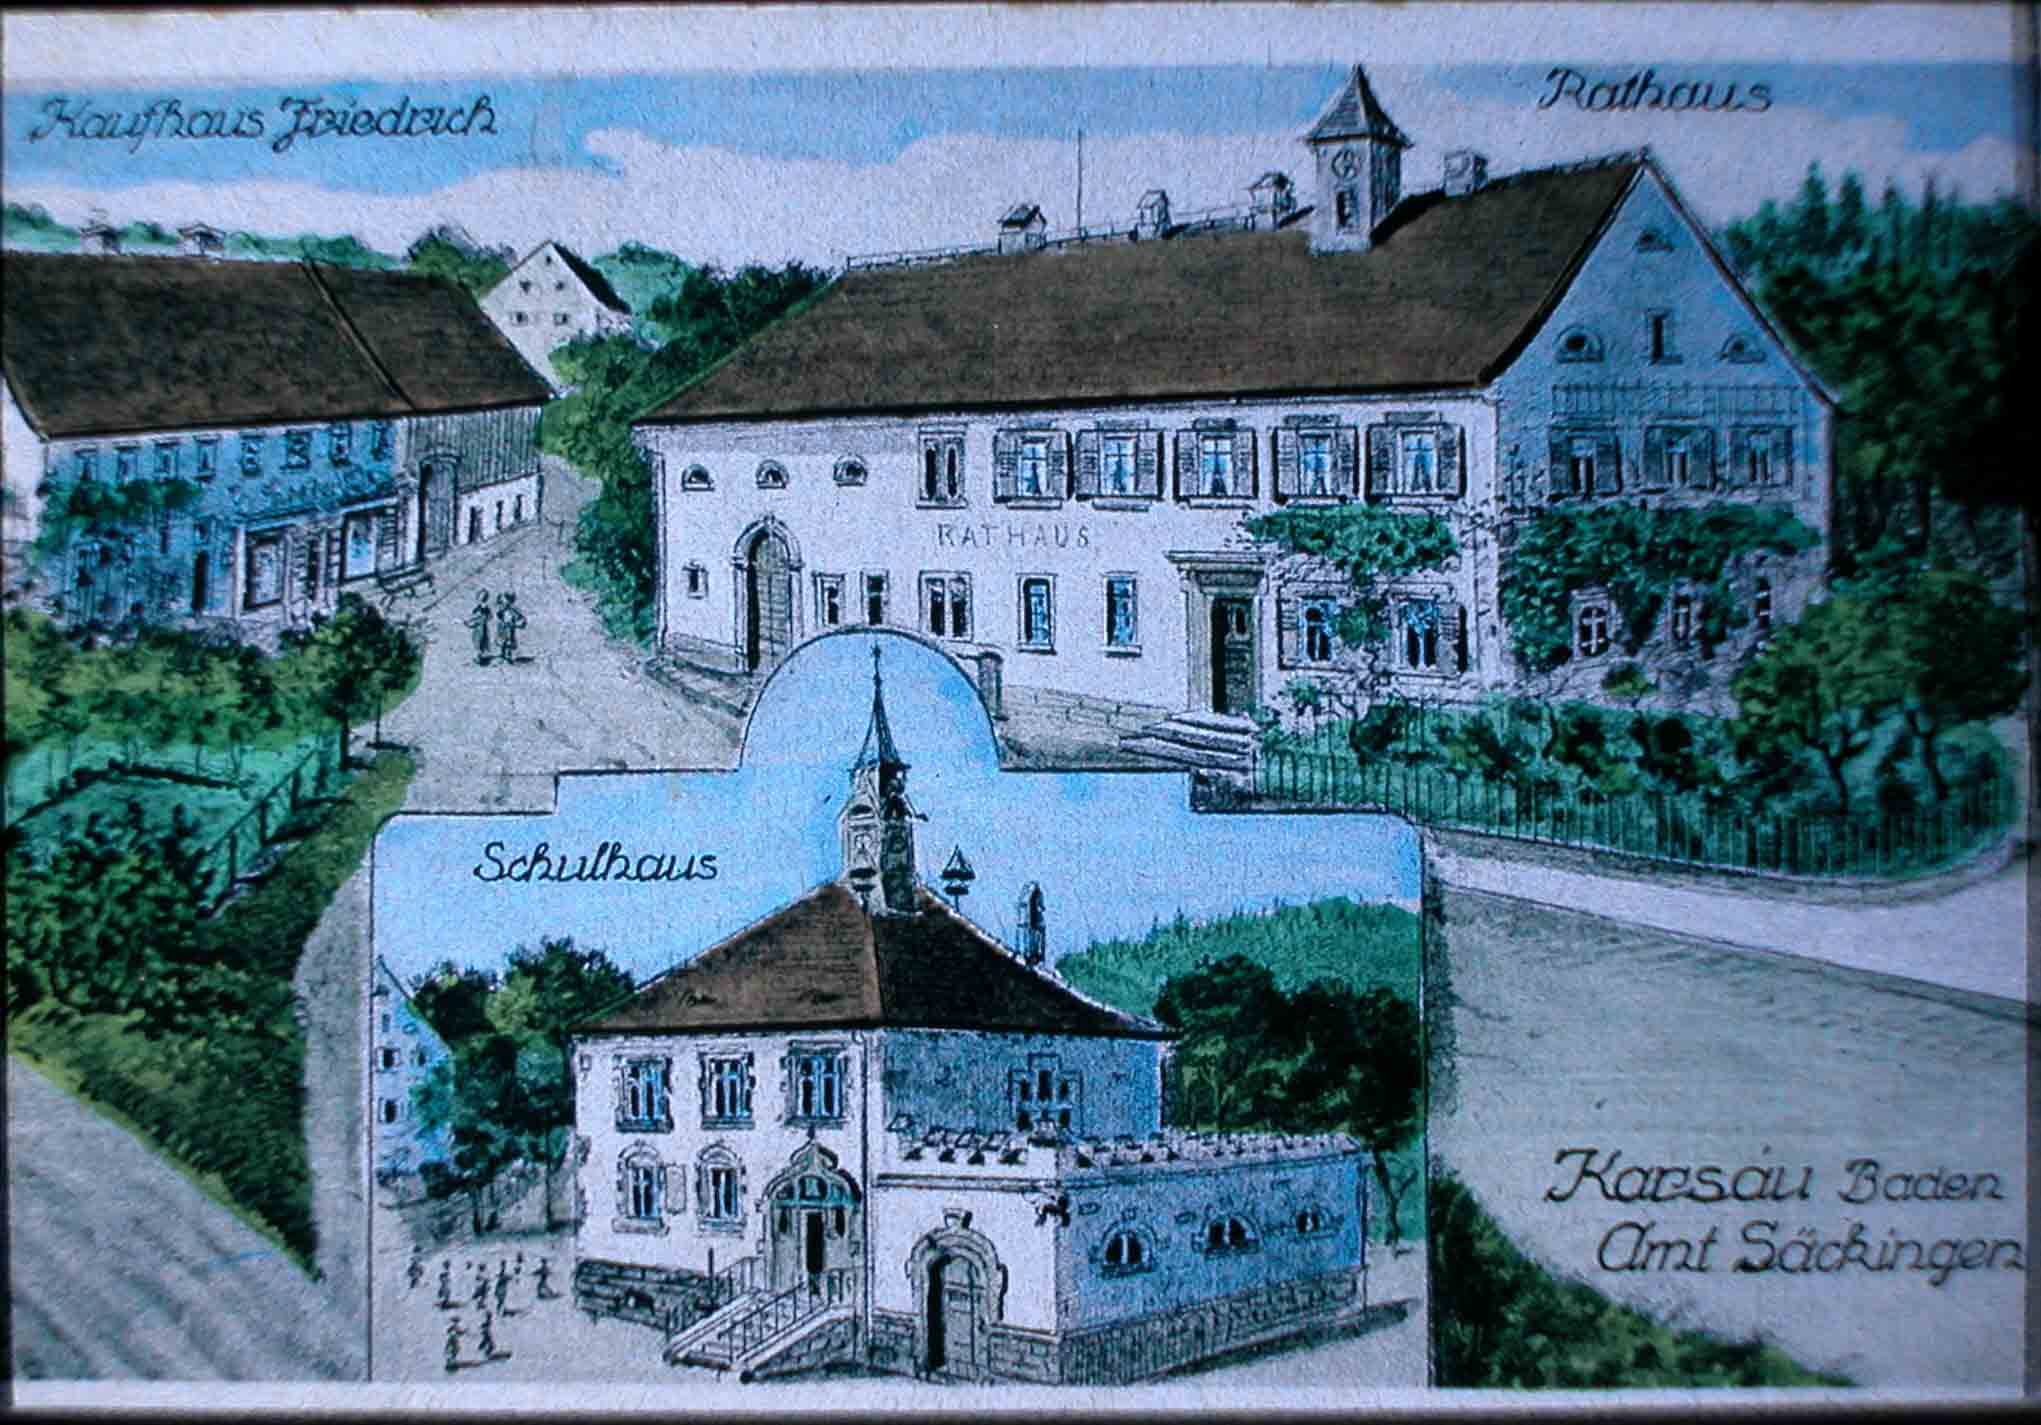 Historical postcard of Karsau